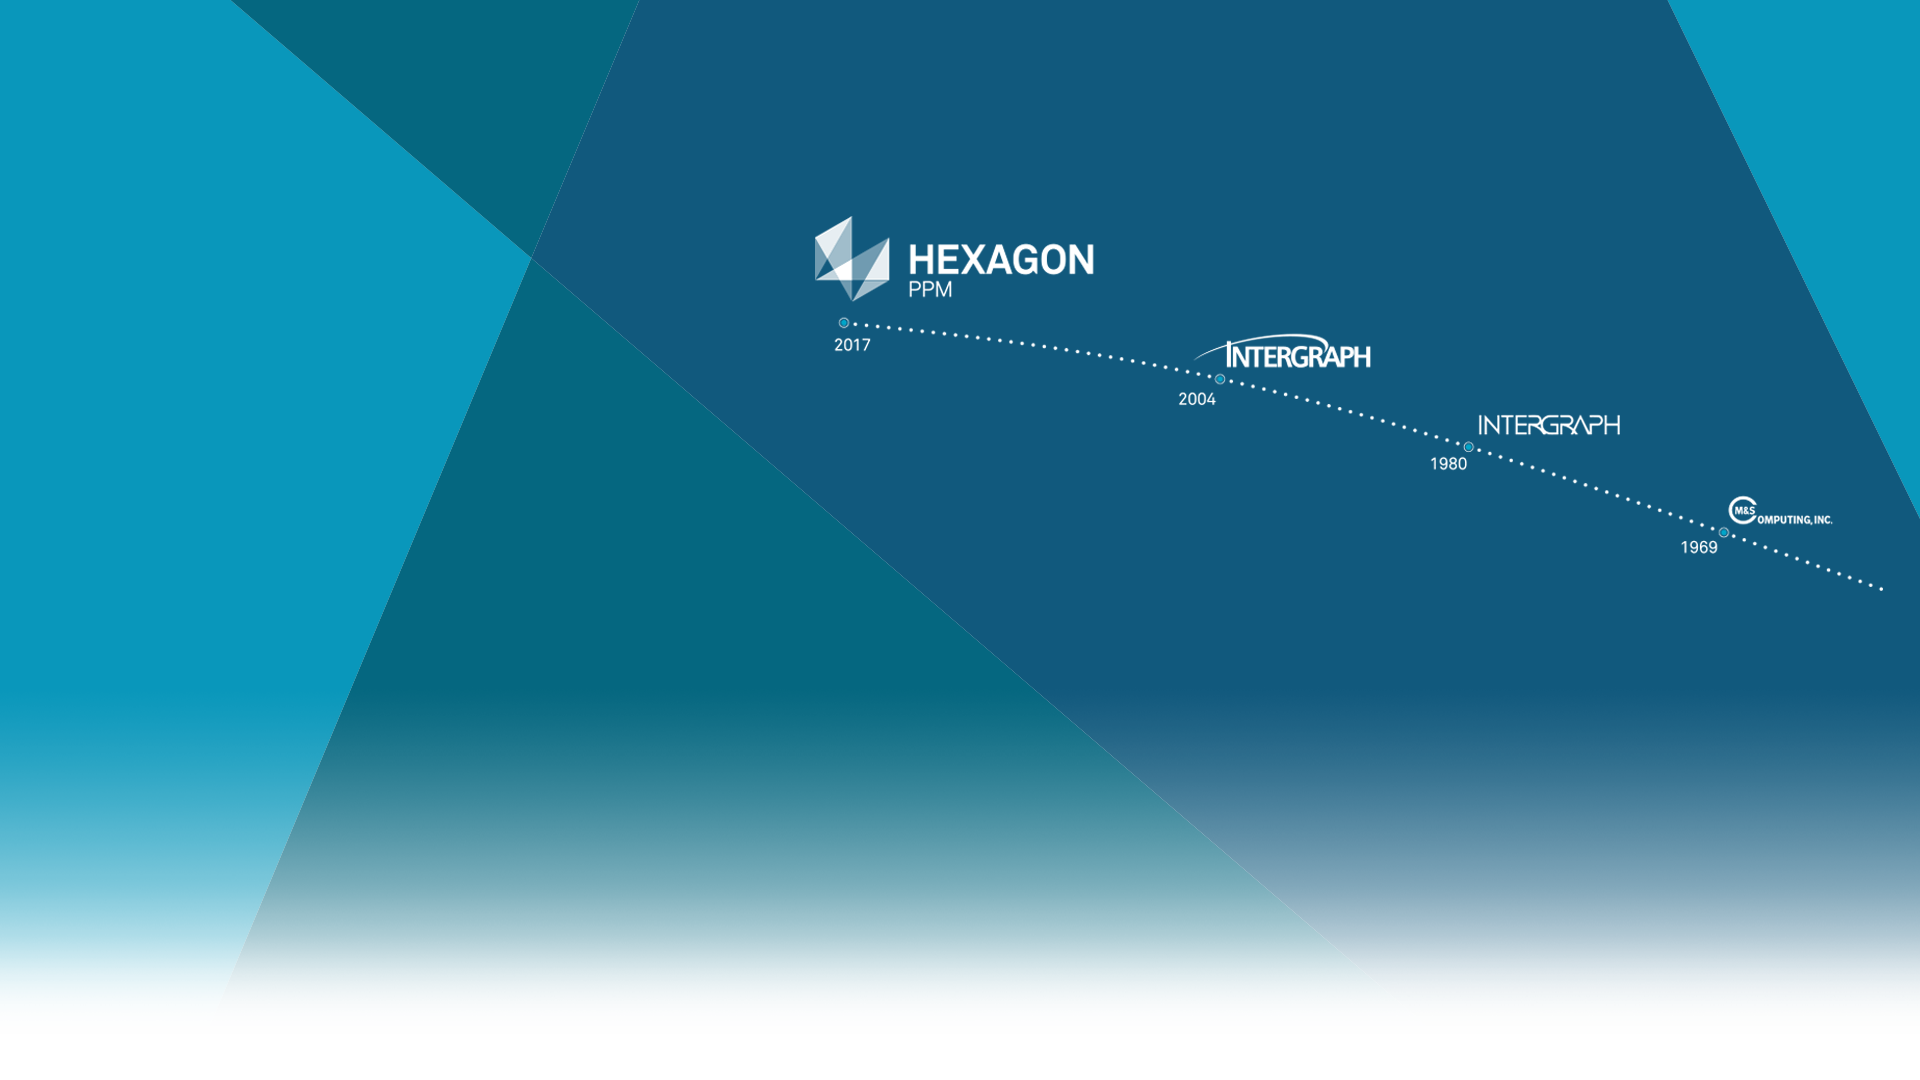 Hexagon PPM, Timeline, Name Changes